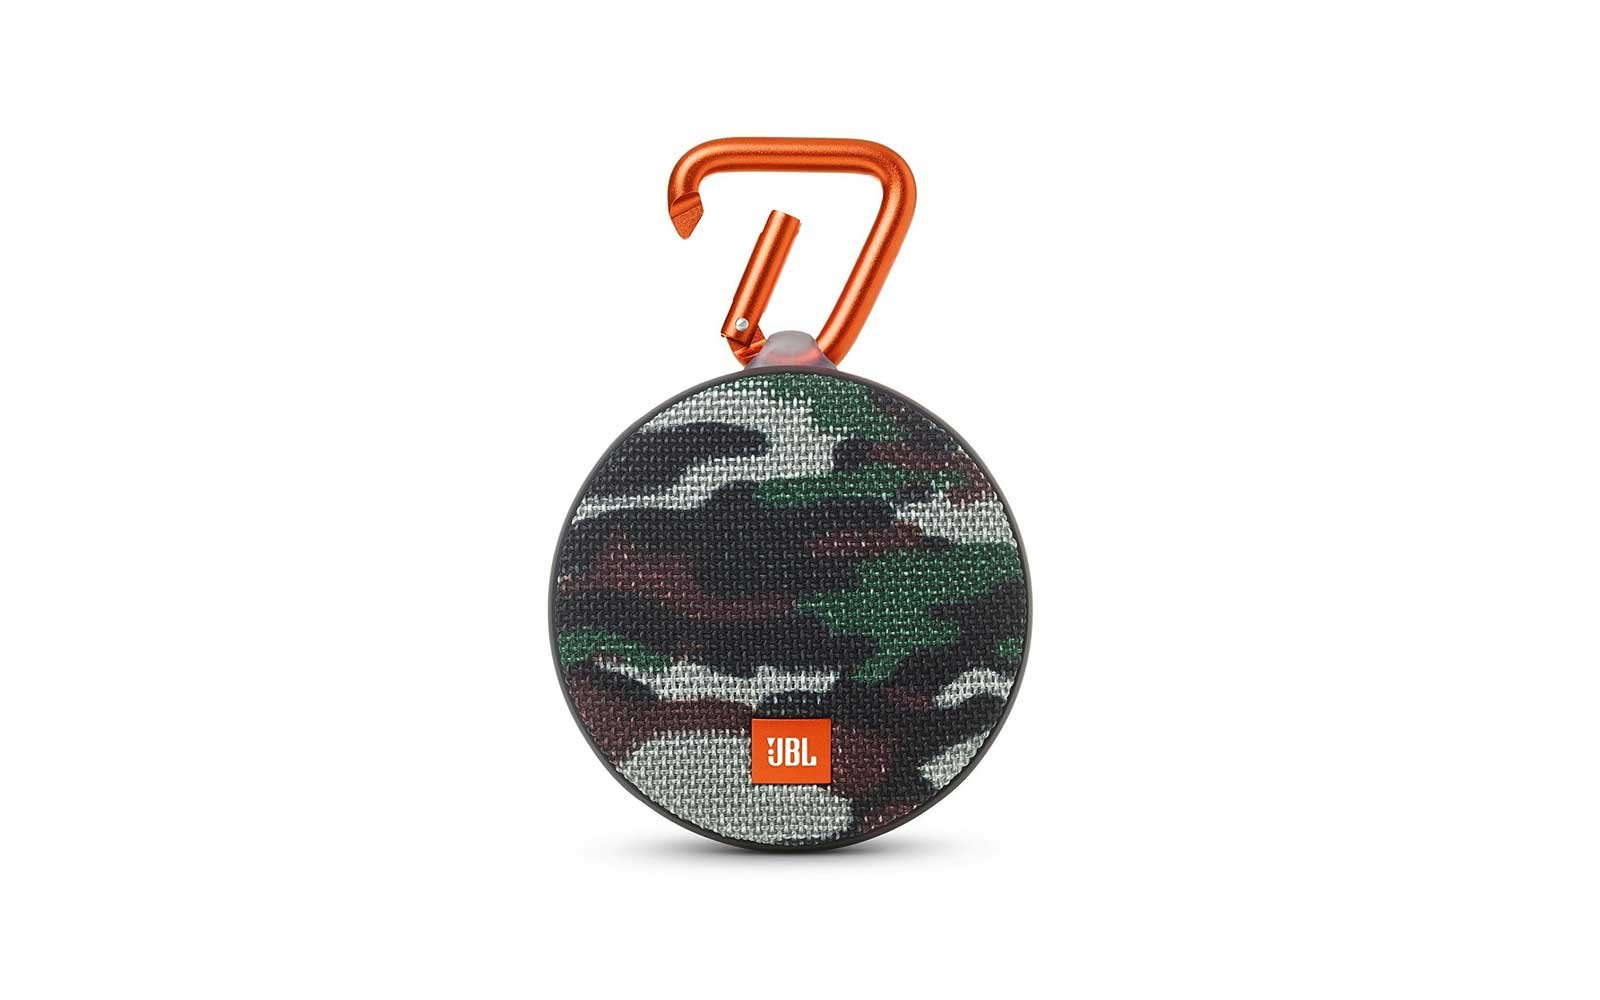 JBL Clip-on Bluetooth Speaker